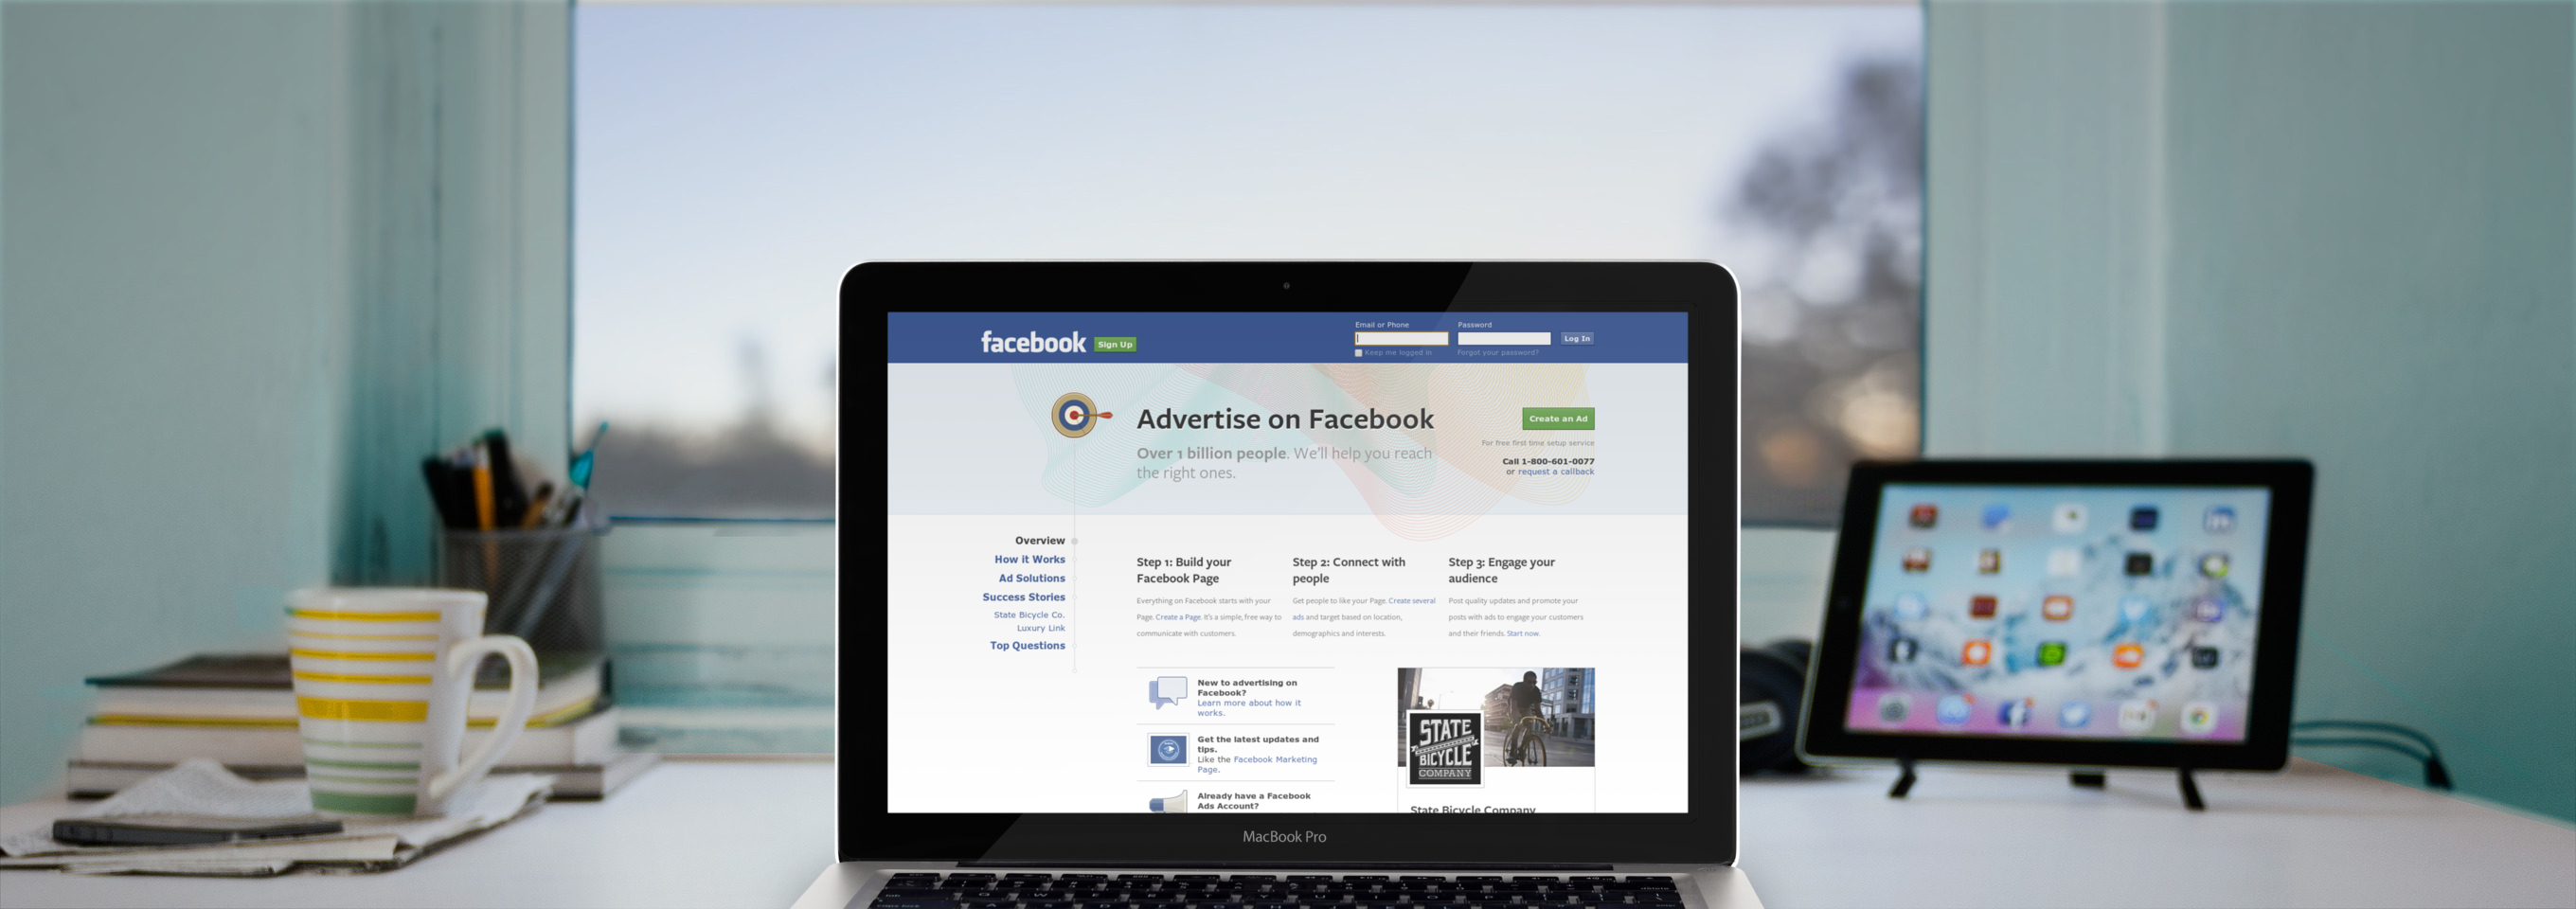 advantages of using facebook in different Facebook offers and check-in deals are also perks that many companies can use in their facebook marketing strategy that are only available through pages use offers to provide a unique way for people to get discounts and offers from you.